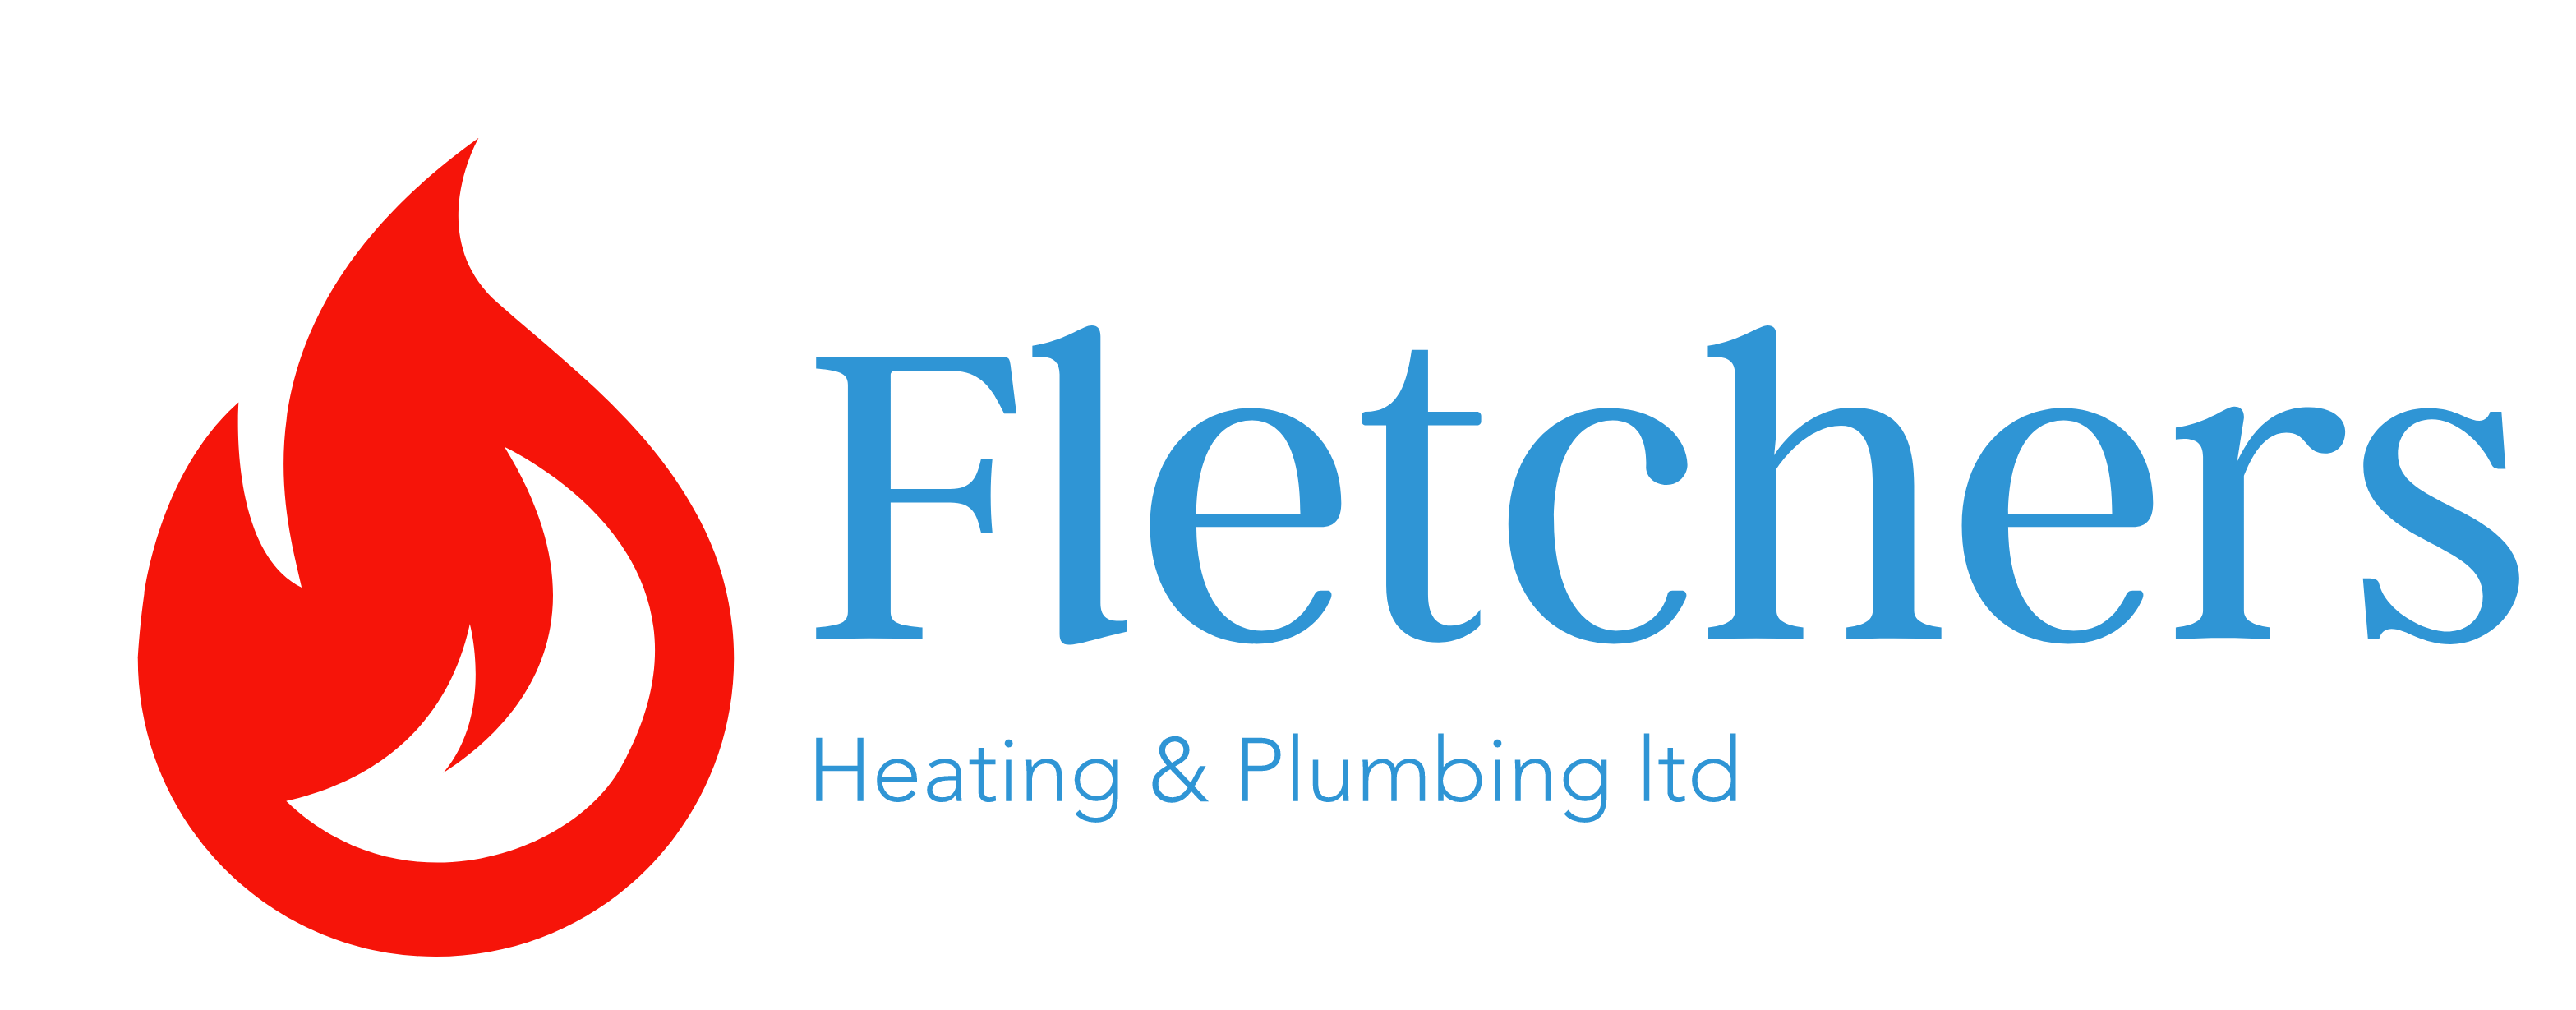 Fletcher Heating & Plumbing Ltd Verified Logo